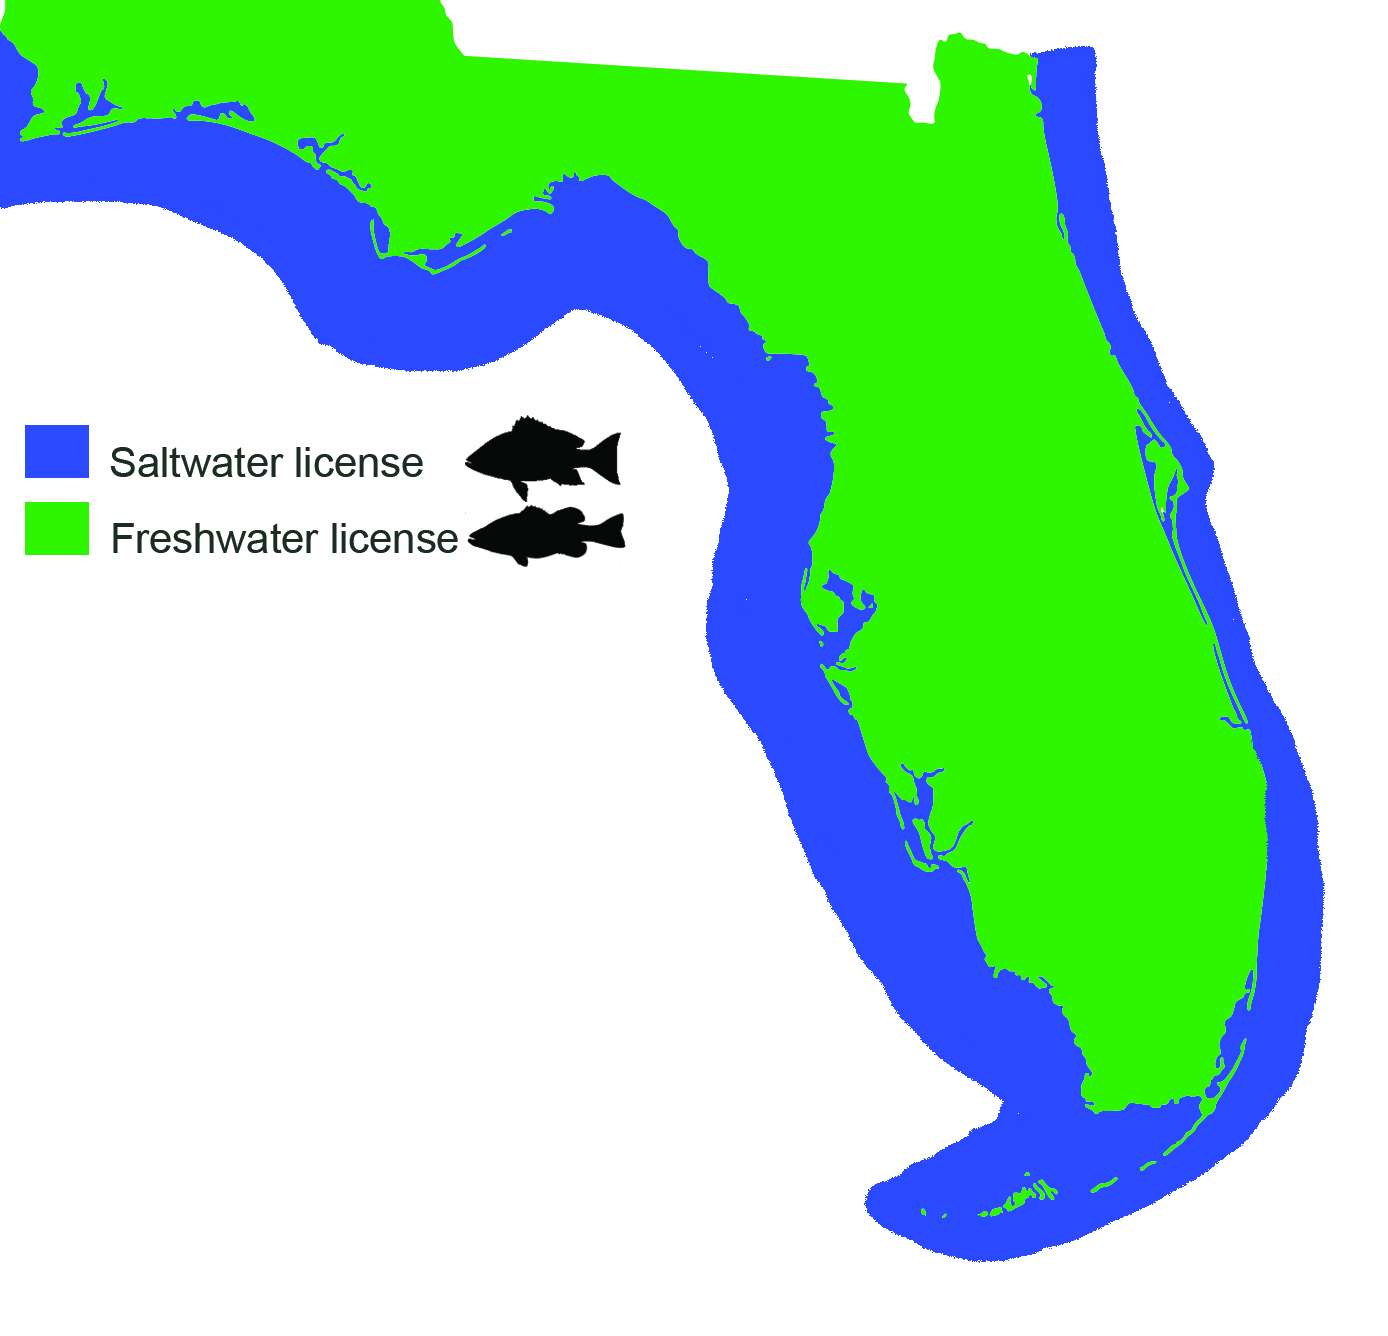 dating sites for over 50 for fishing license florida: